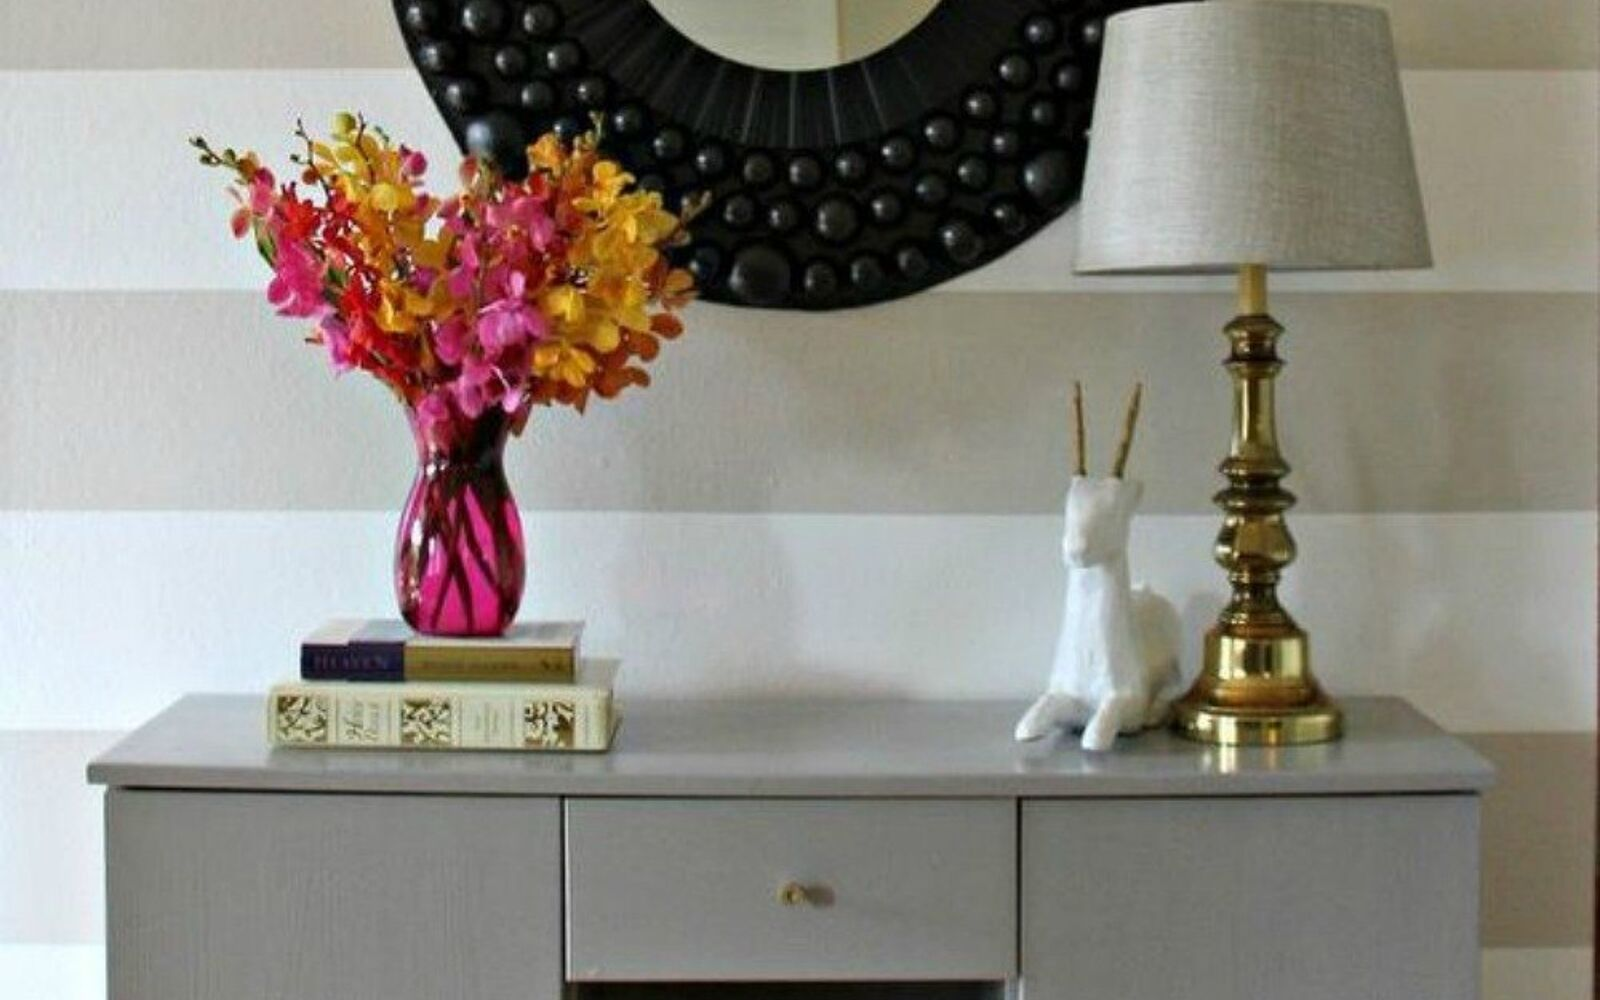 s decorate your living room for under 10 with these 15 ideas, Mount a large mirror to add light